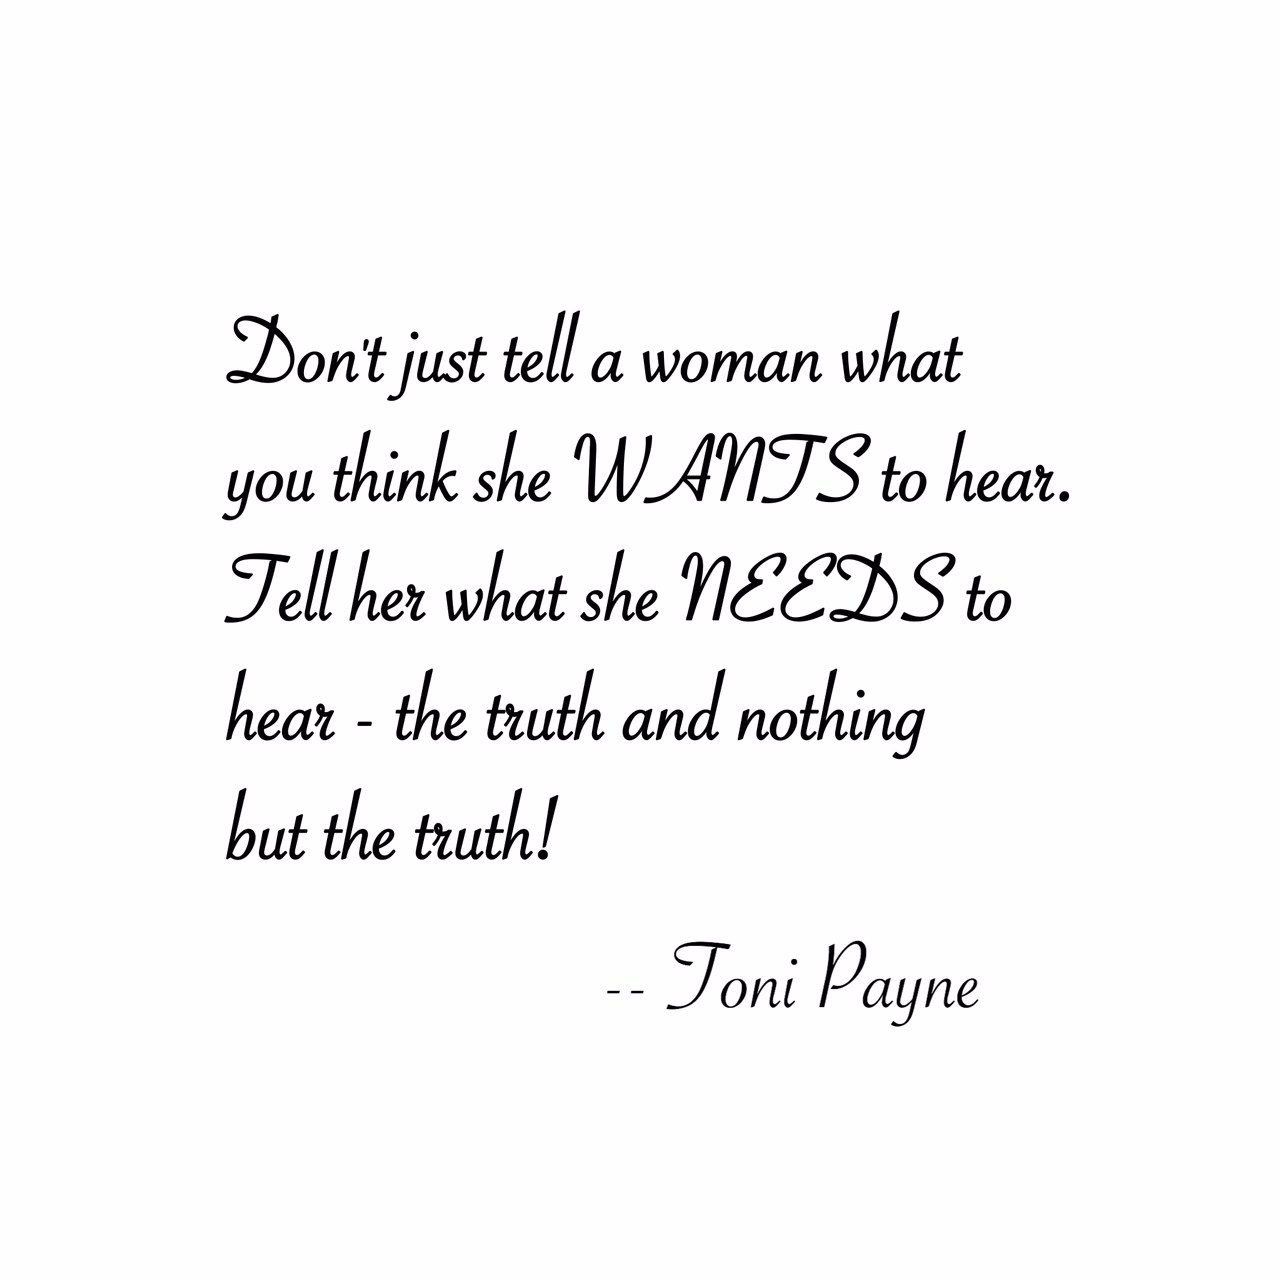 Tell Her What She Needs To Hear The Truth And Nothing But The Truth Toni Payne Quote About Love